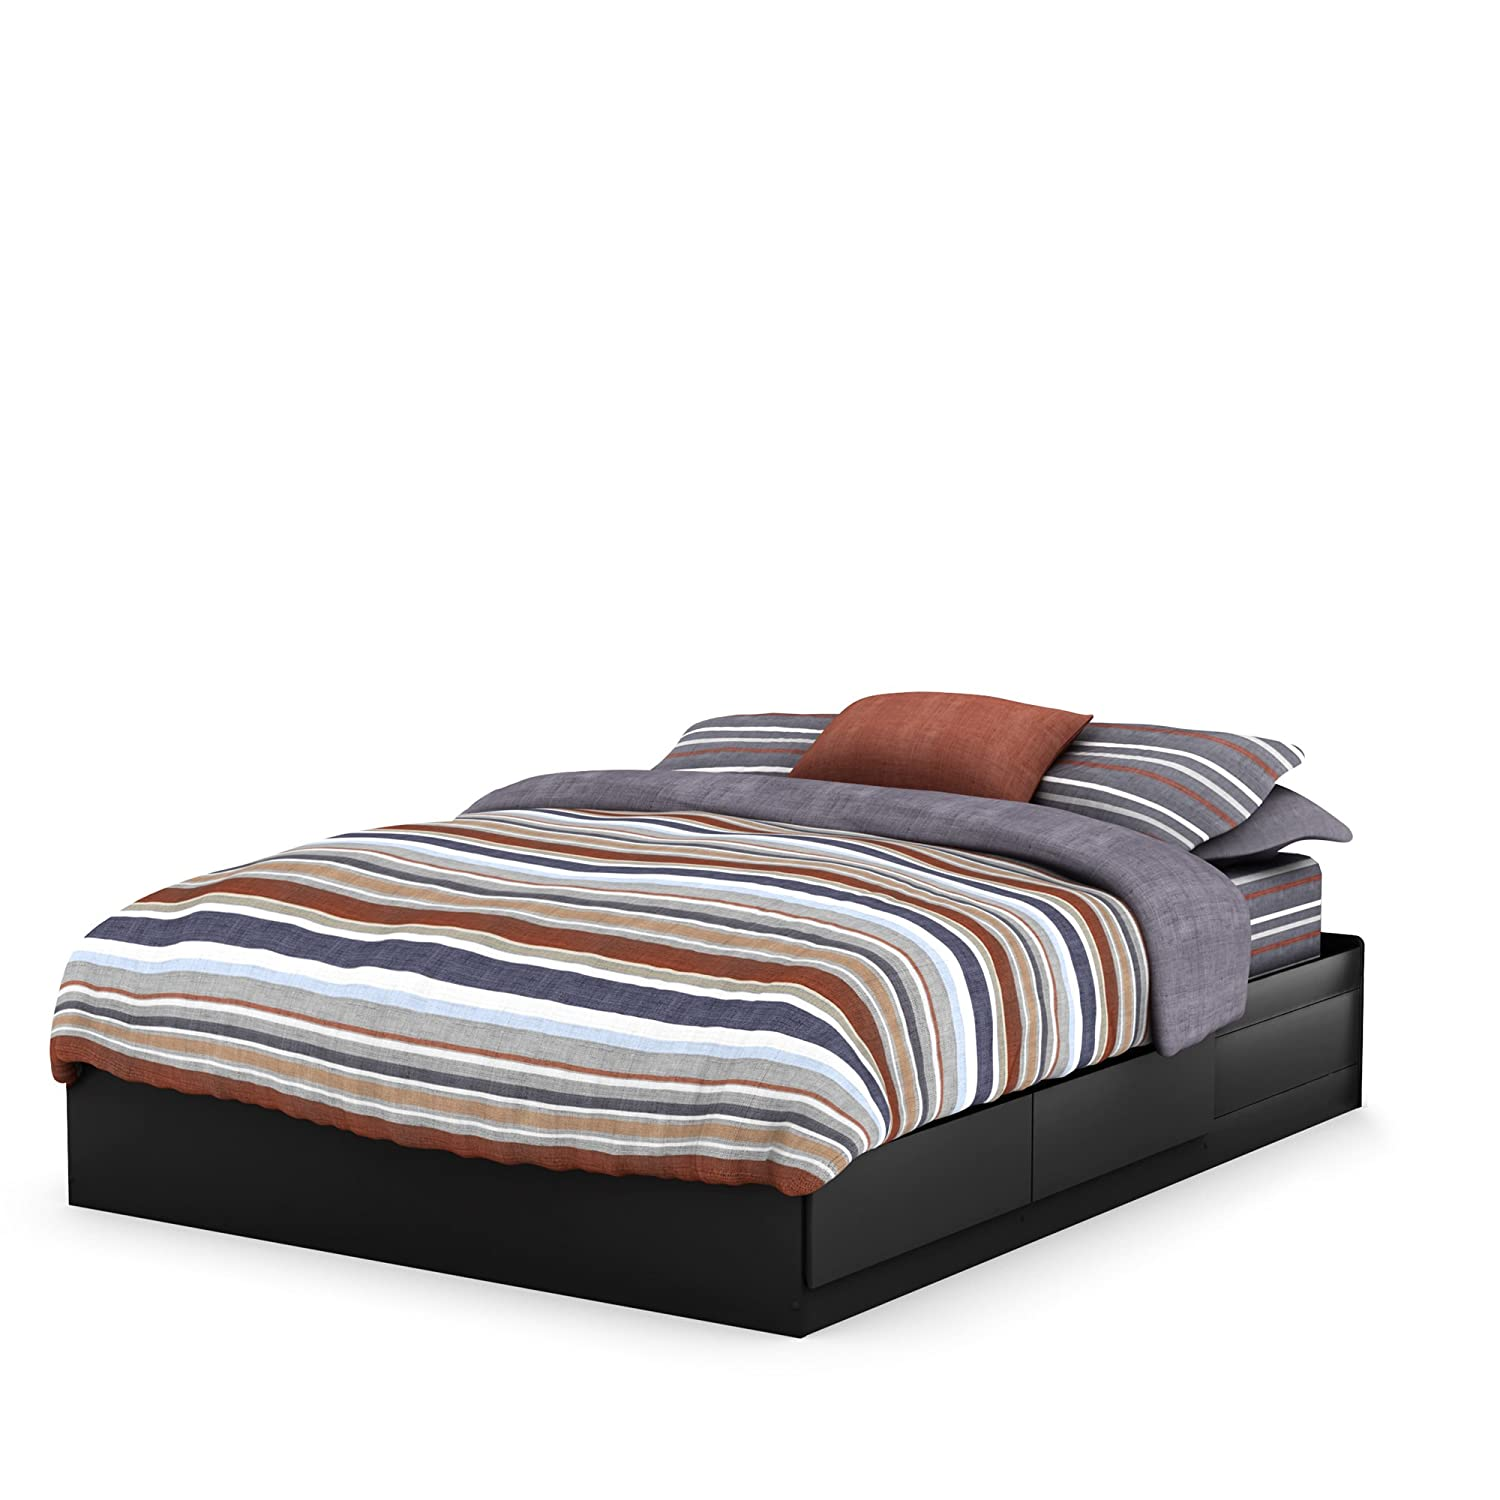 amazoncom south shore vito collection queen inch mates bed  - amazoncom south shore vito collection queen inch mates bed blackkitchen  dining